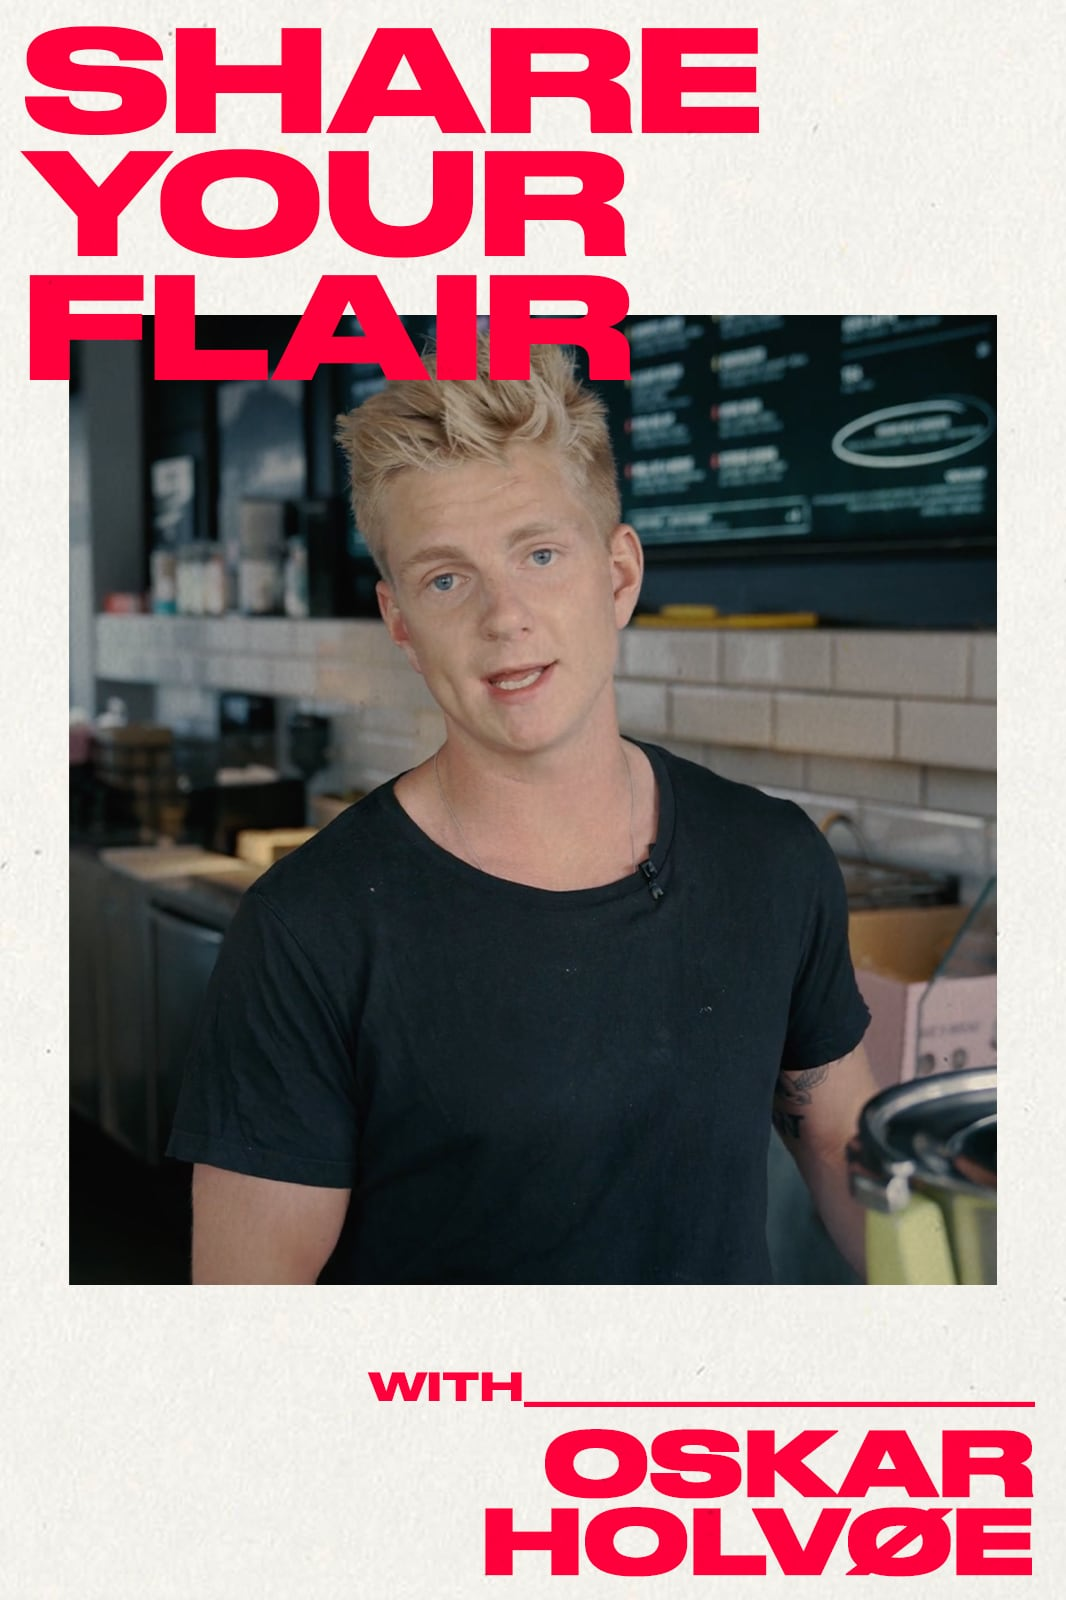 Share your flair|episode 2